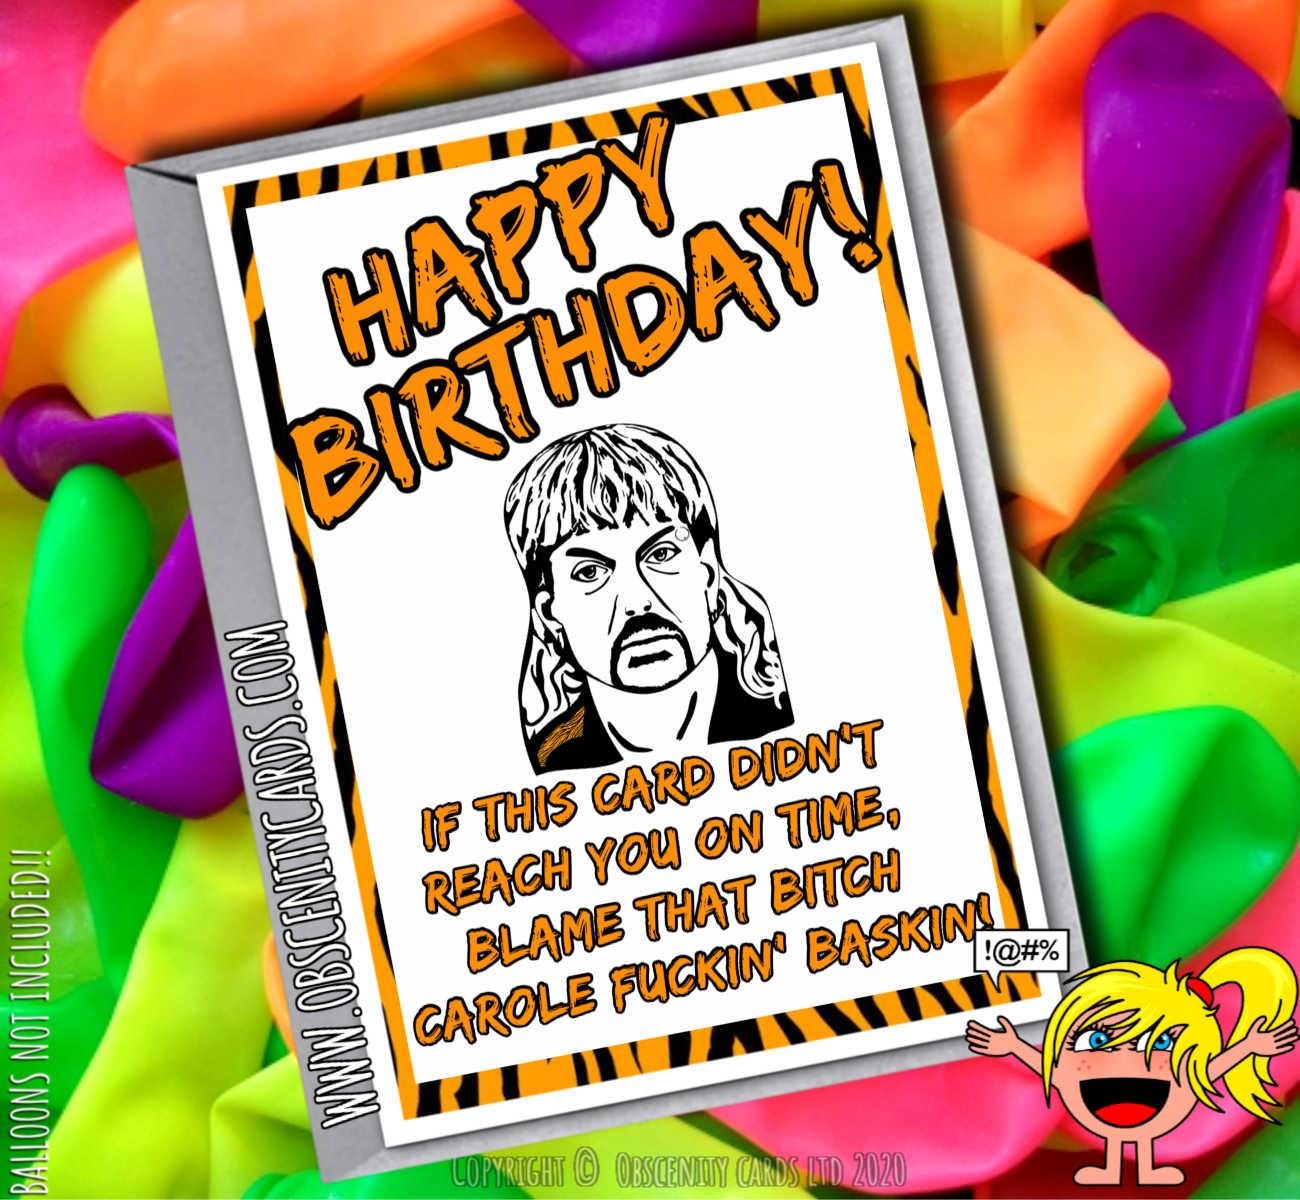 HAPPY BIRTHDAY IF THIS CARD DIDN'T REACH YOU ON TIME, BLAME THAT BITCH CAROLE FUCKIN' BASKIN JOE EXOTIC TIGER KING